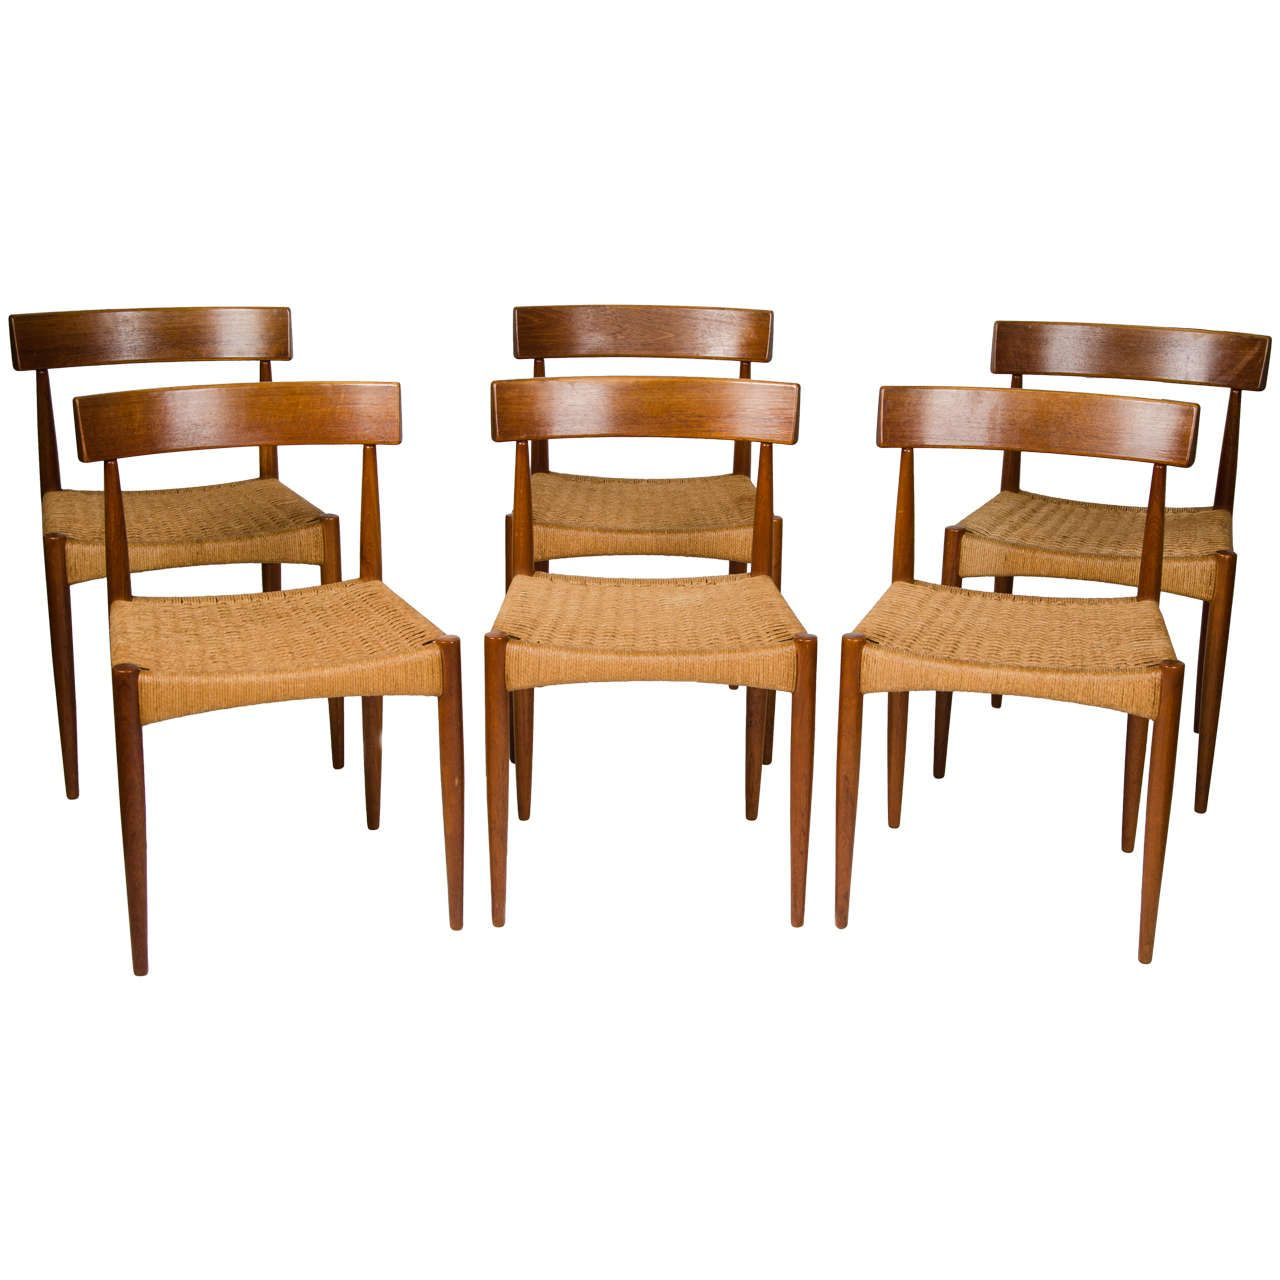 View This Item And Discover Similar Dining Room Chairs For Sale At   A Set  Of Six Danish Dining Chairs Manufactured In Teak With Woven Paper Cord  Seats.